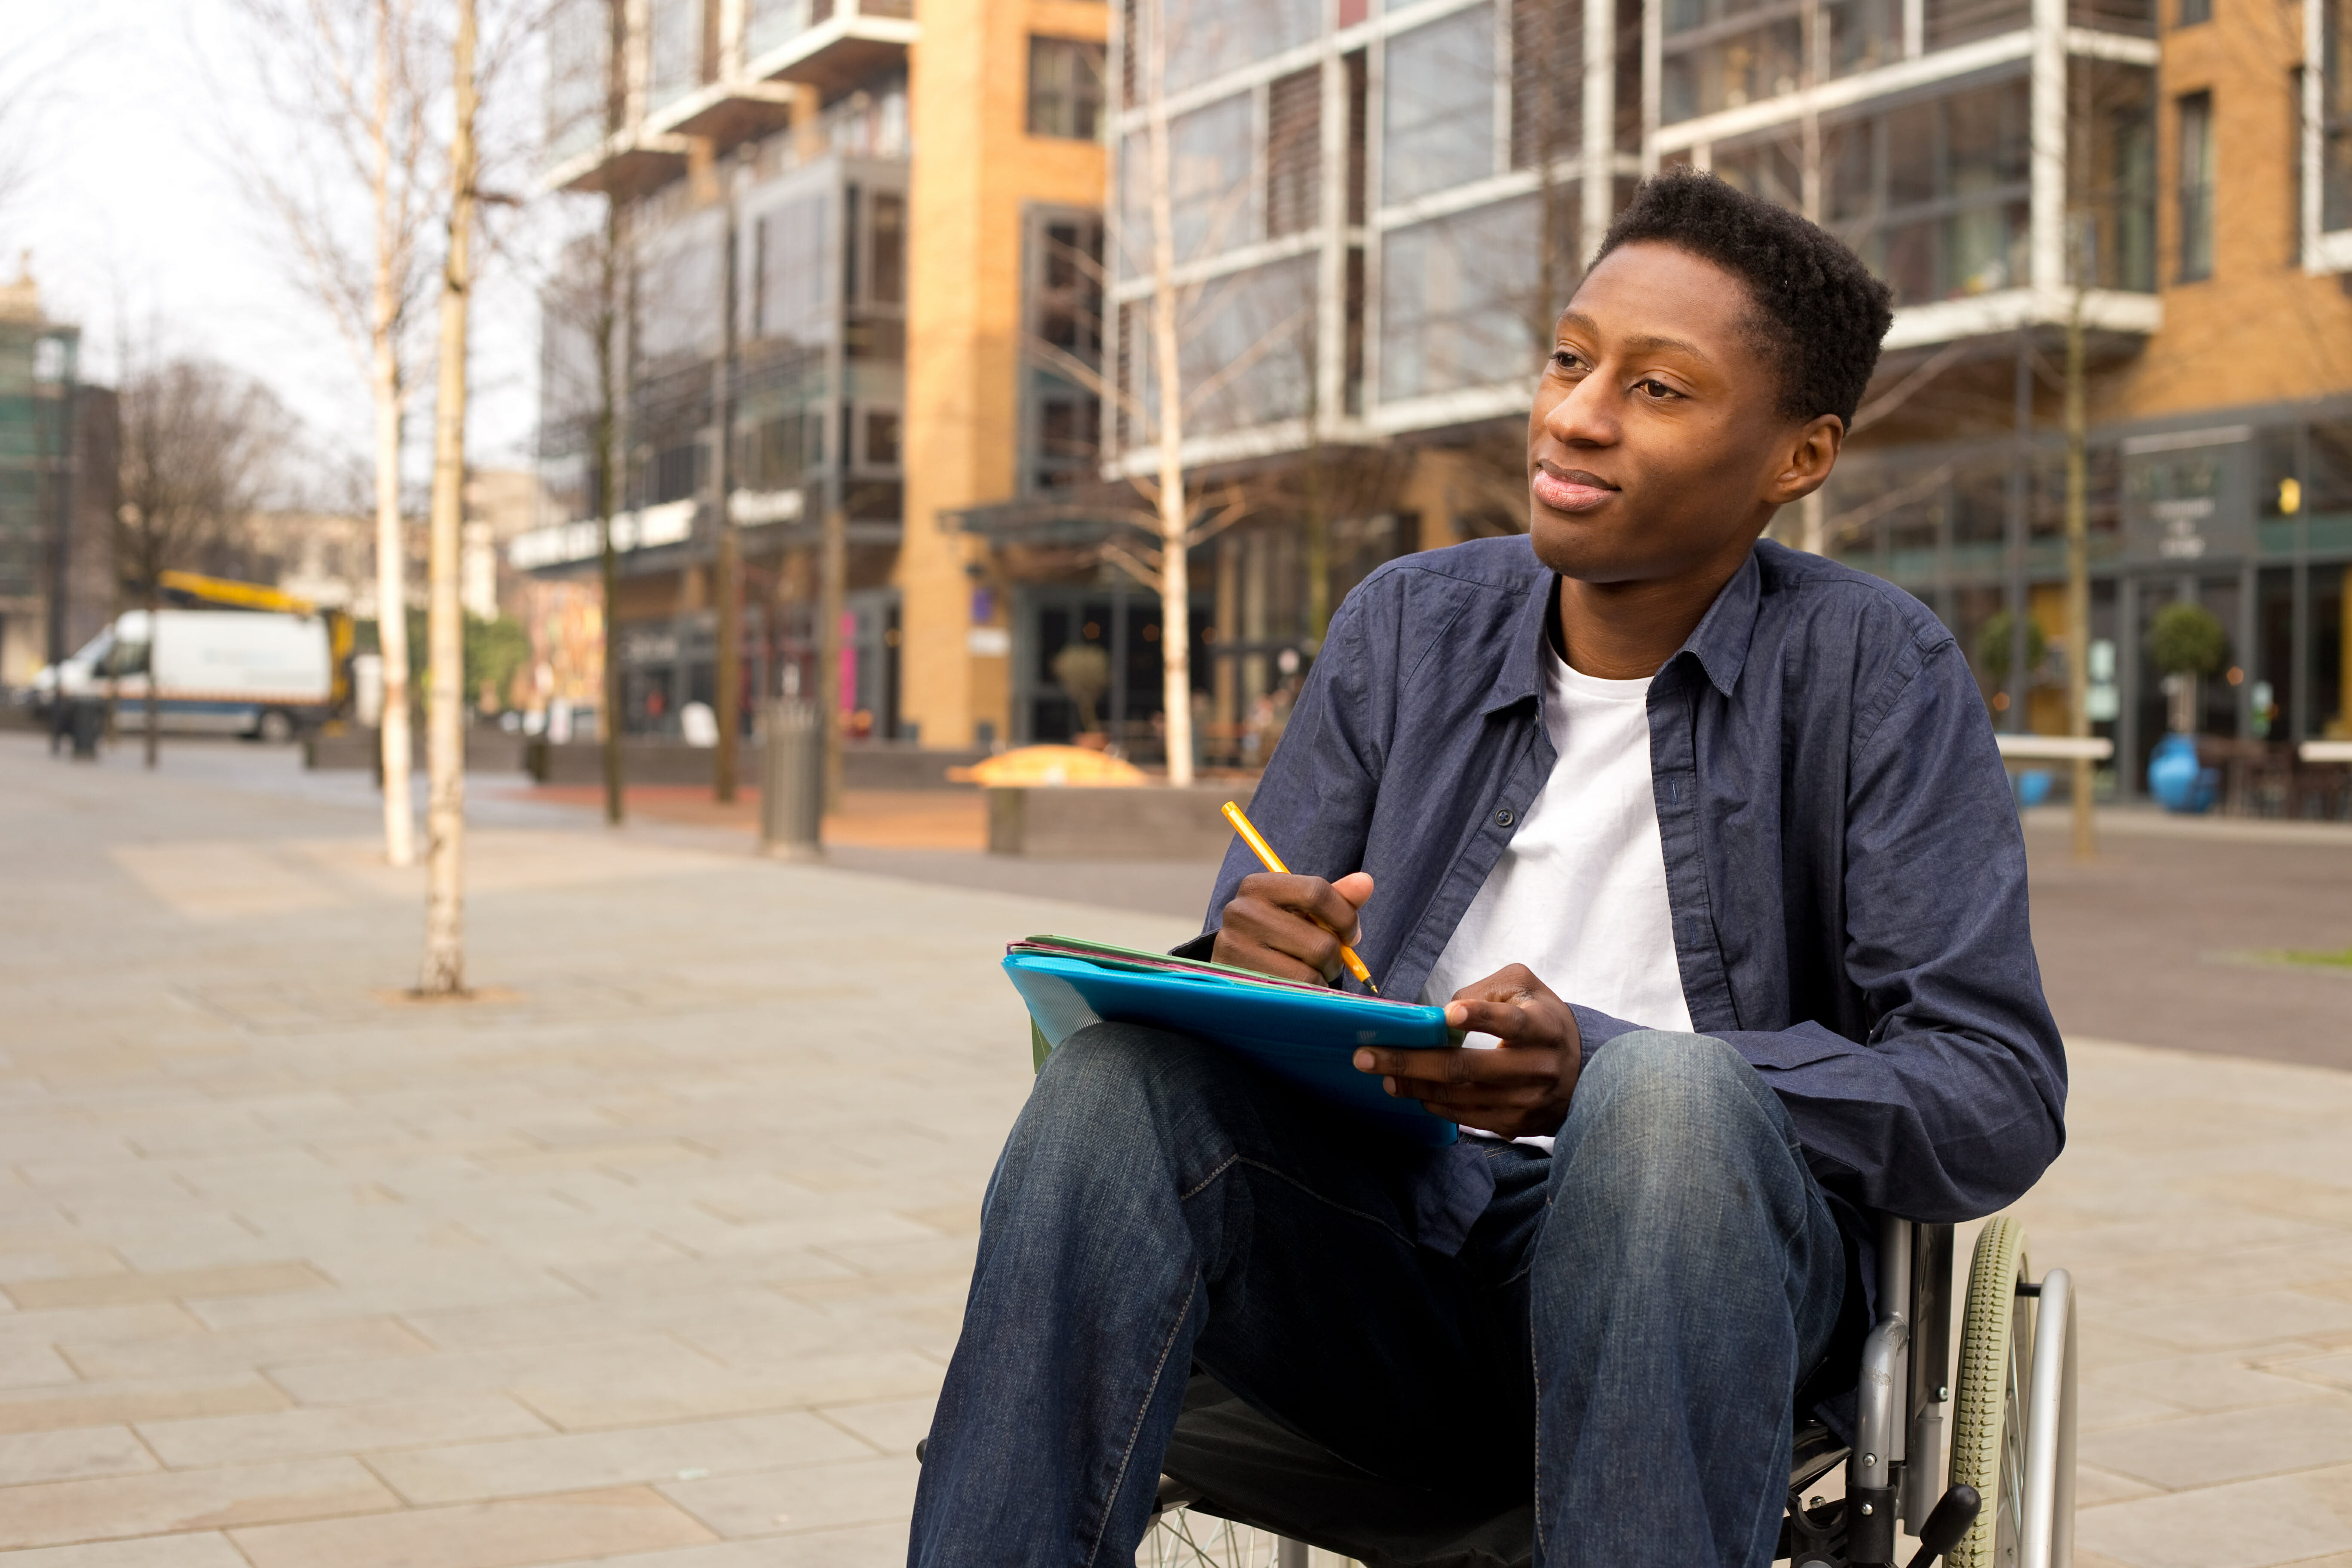 discrimination disabilities essay Disability discrimination is when a person with a disability is treated less favourably than a person without the disability in the same or similar circumstances.